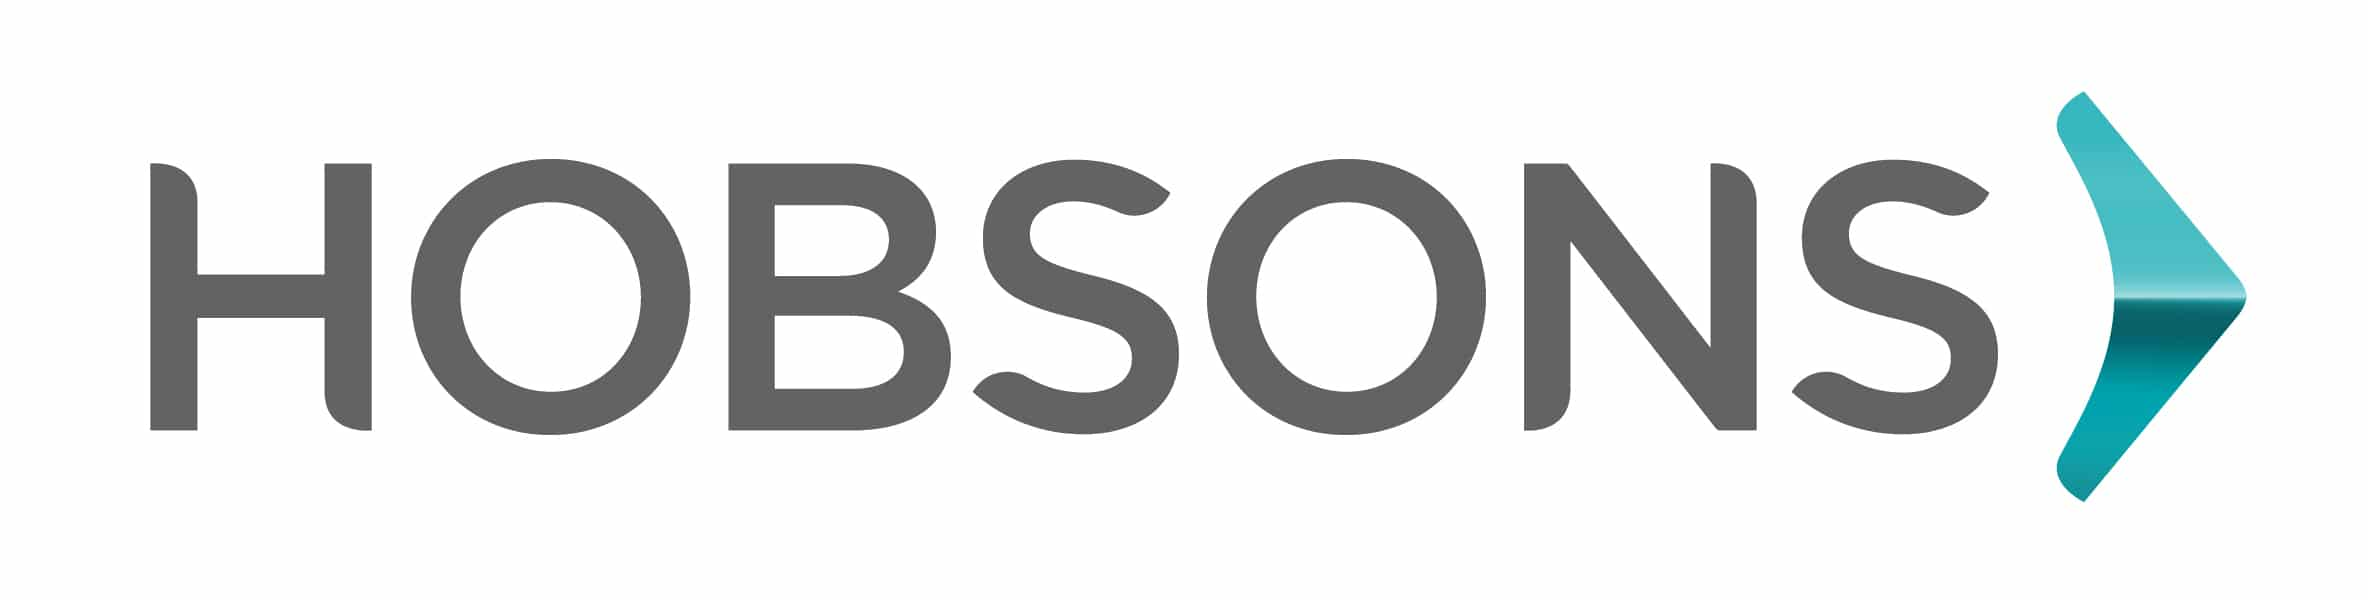 Hobsons the makers of Naviance logo